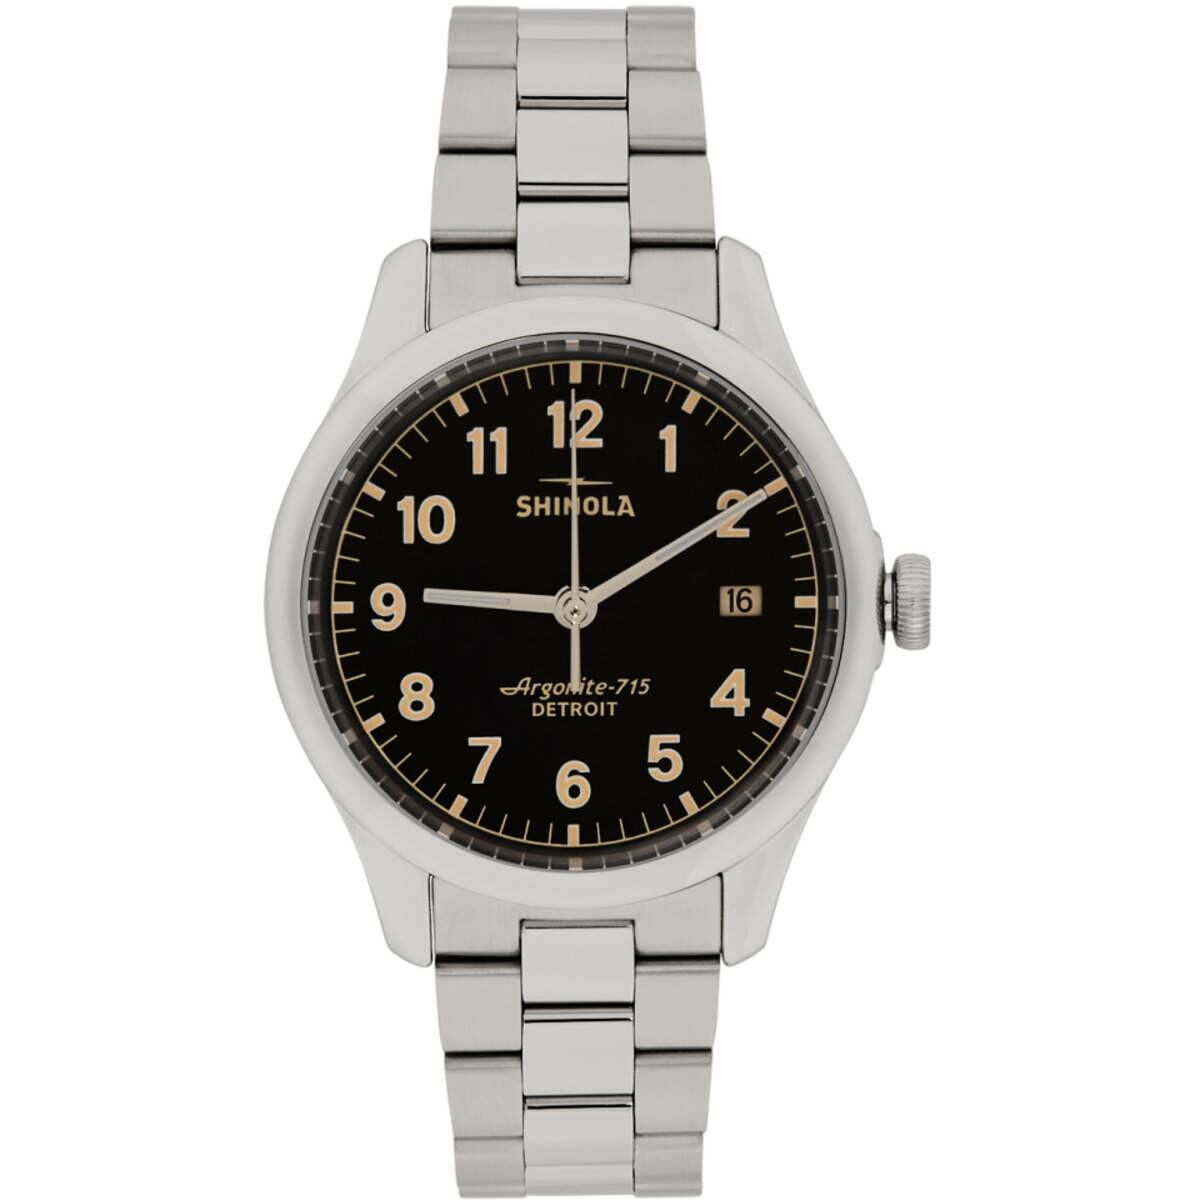 Shinola Silver and Black The Vinton 38mm Watch Ssense USA MEN Men ACCESSORIES Mens WATCHES